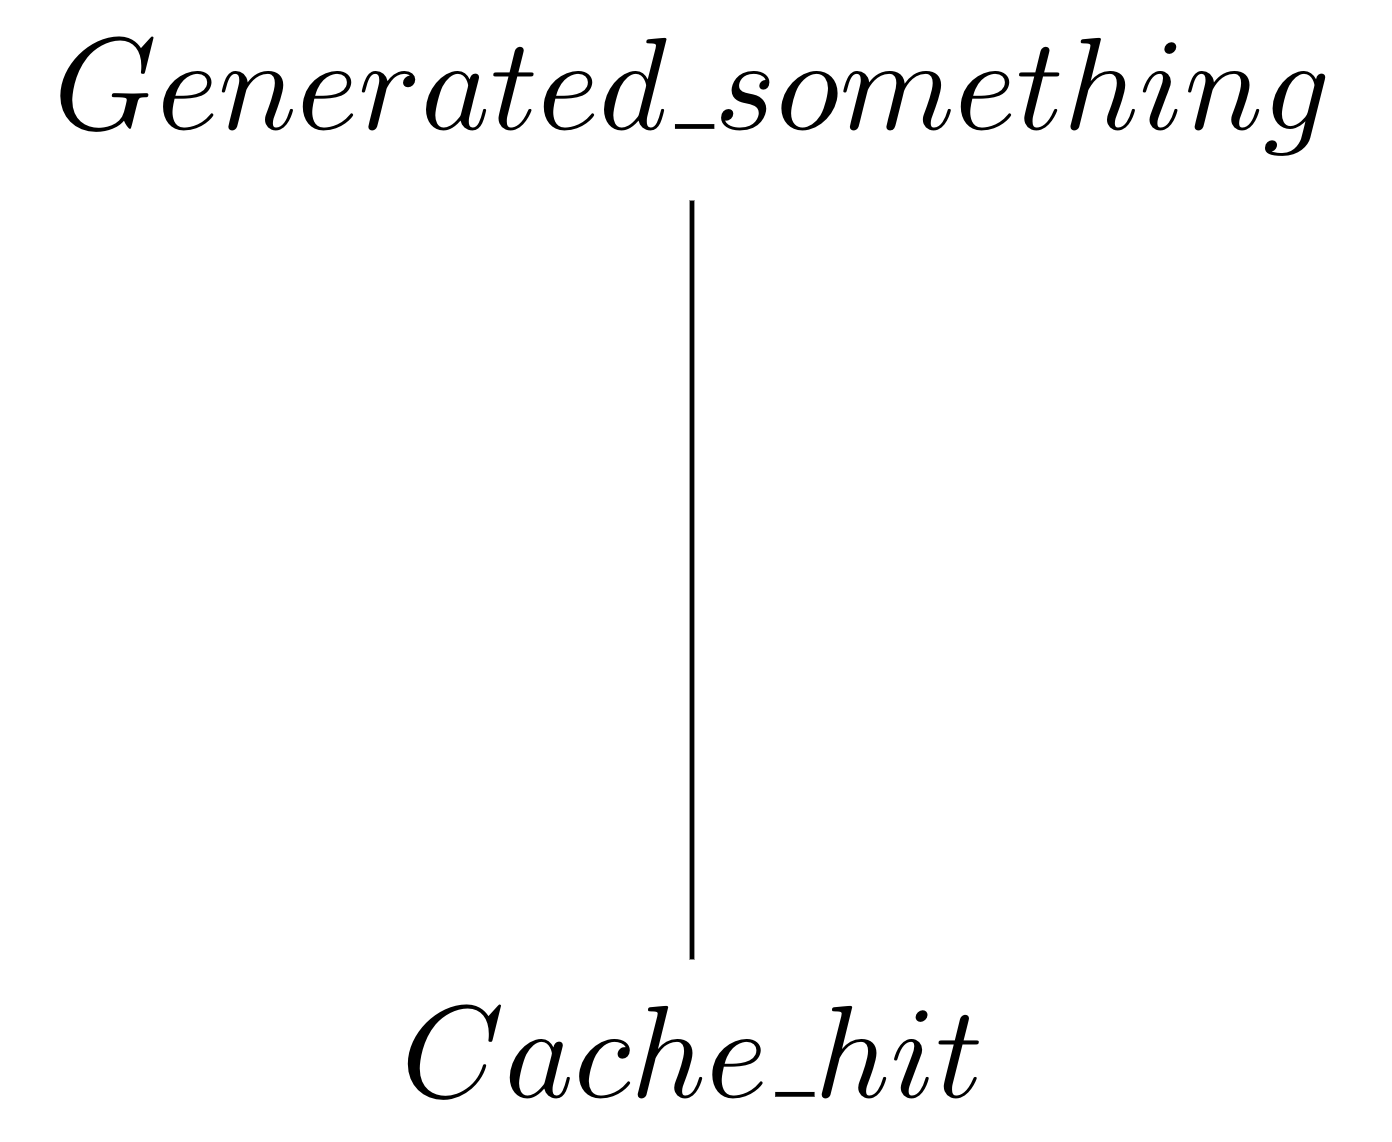 Semilattice cache_hit at the bottom generated_something at the top